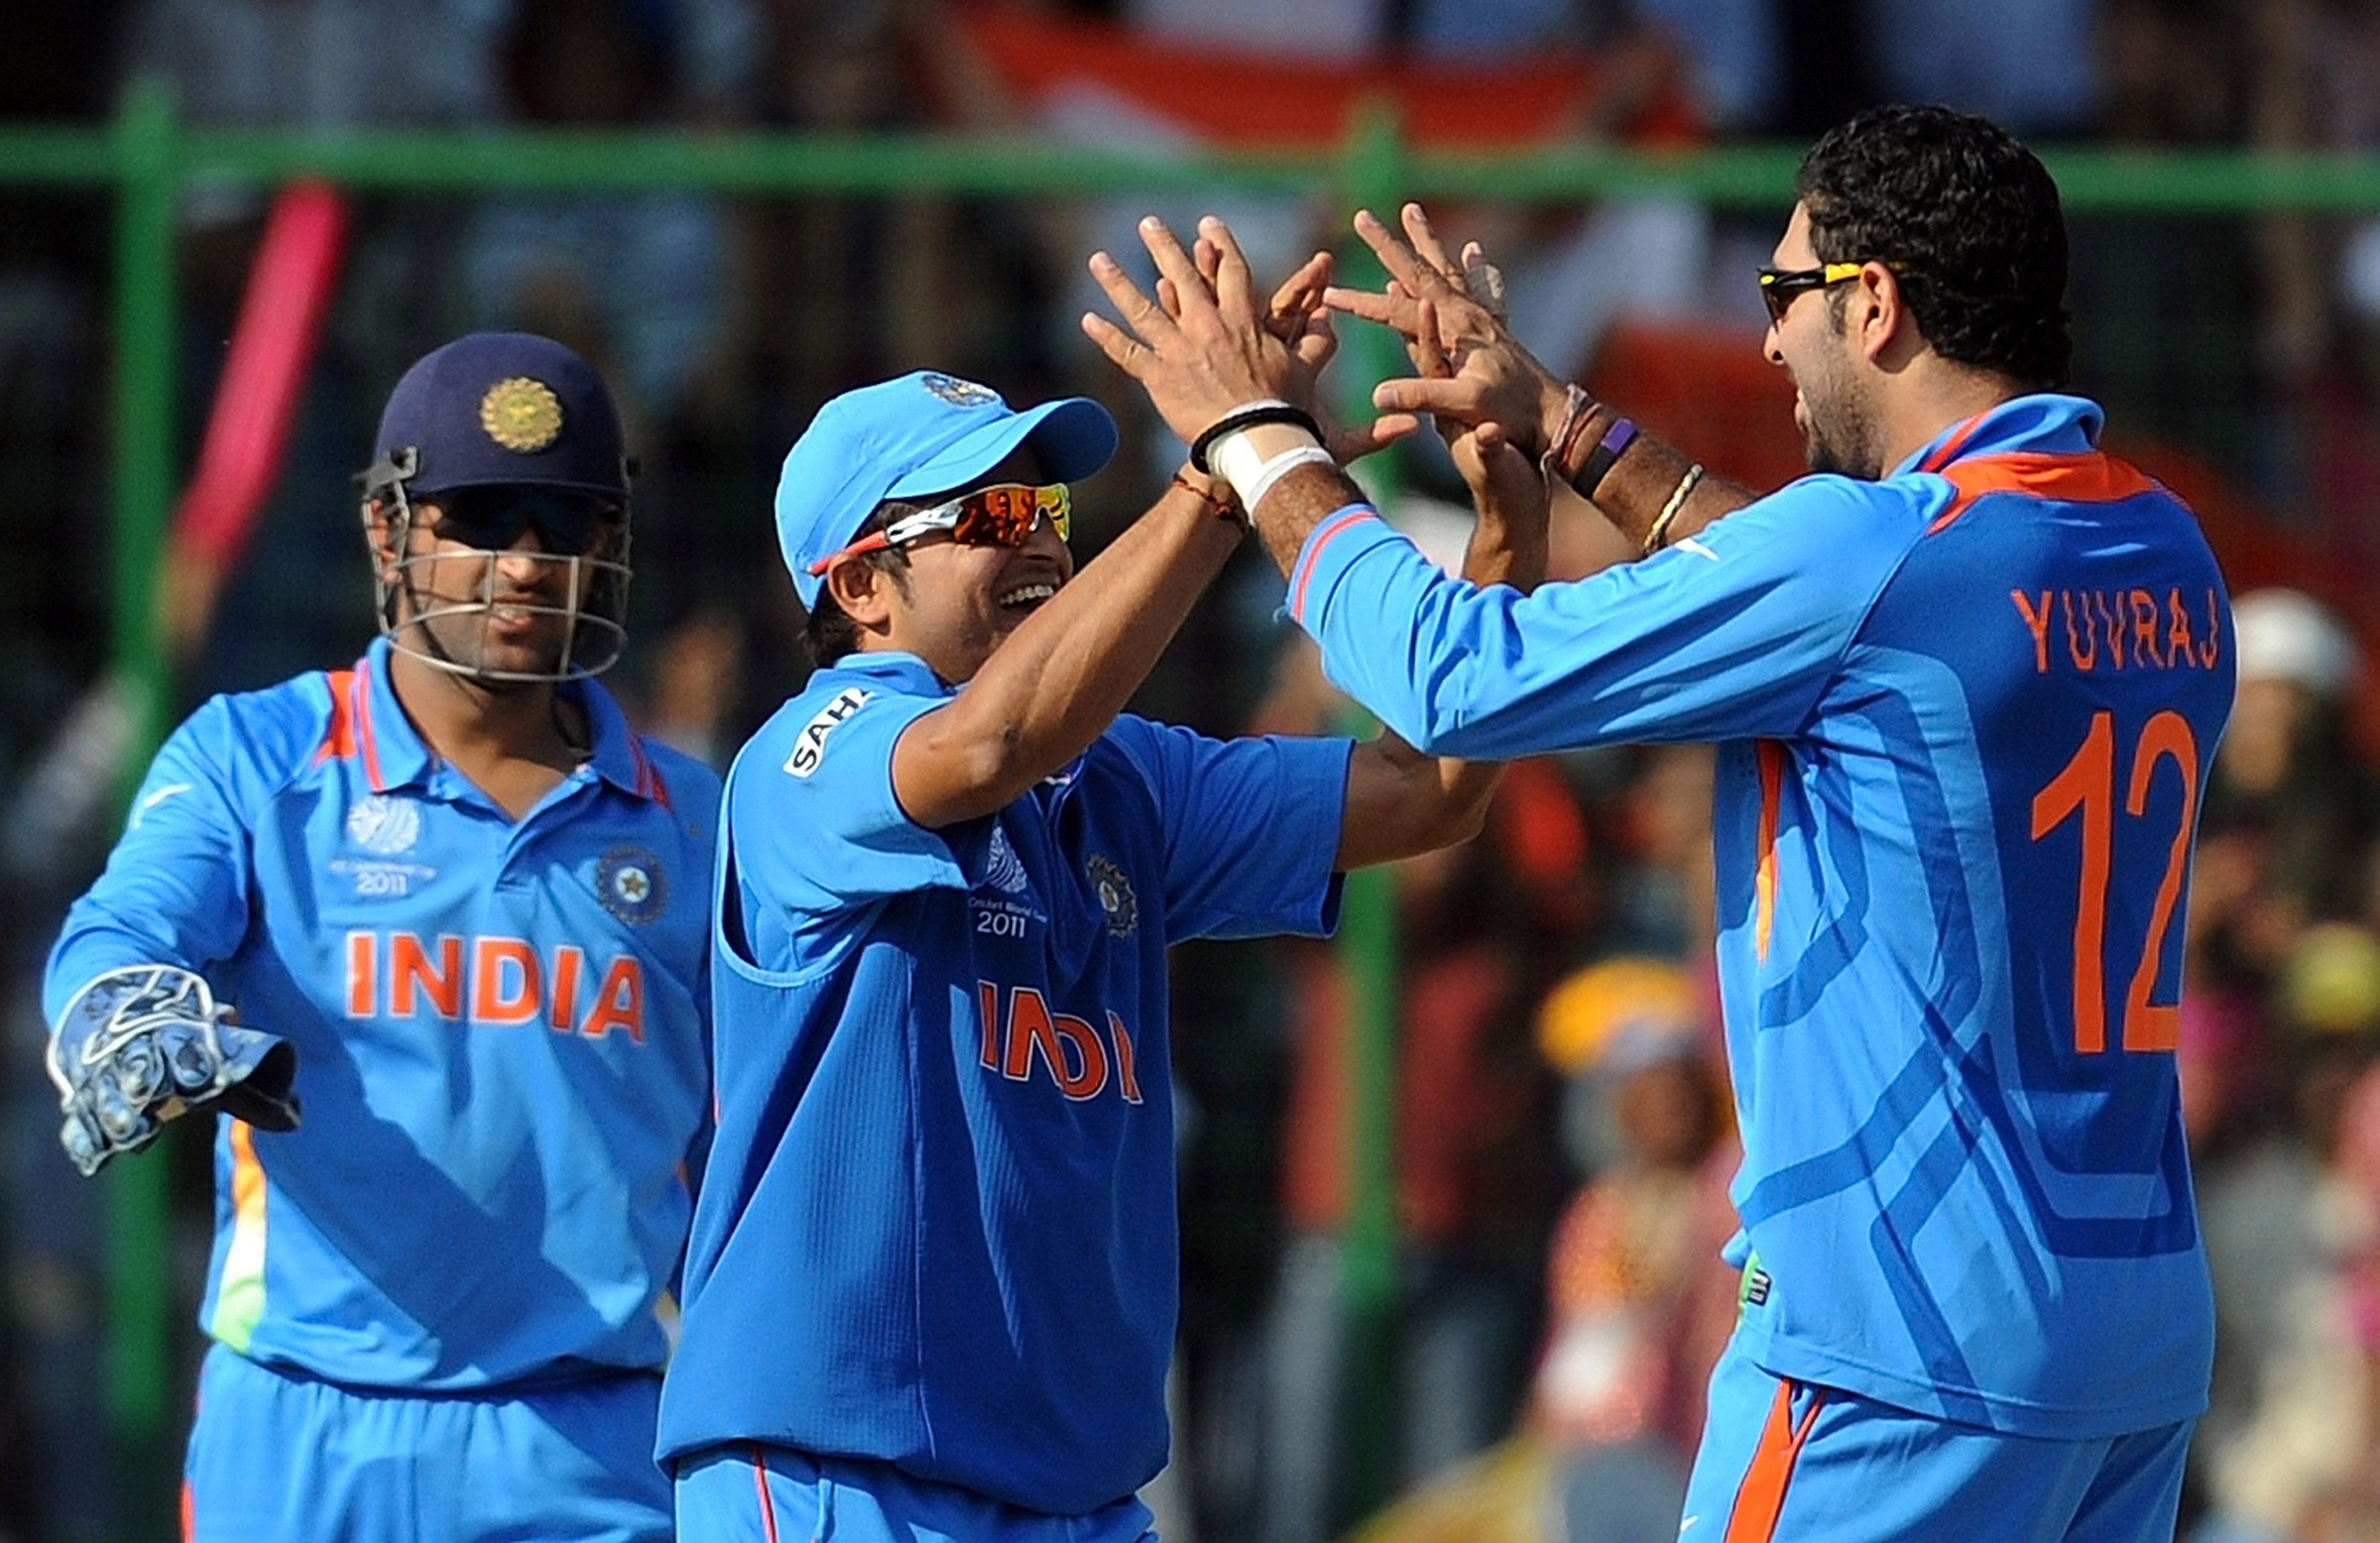 Yuvraj, Ashwin, Jadeja not picked for SL limited-overs series